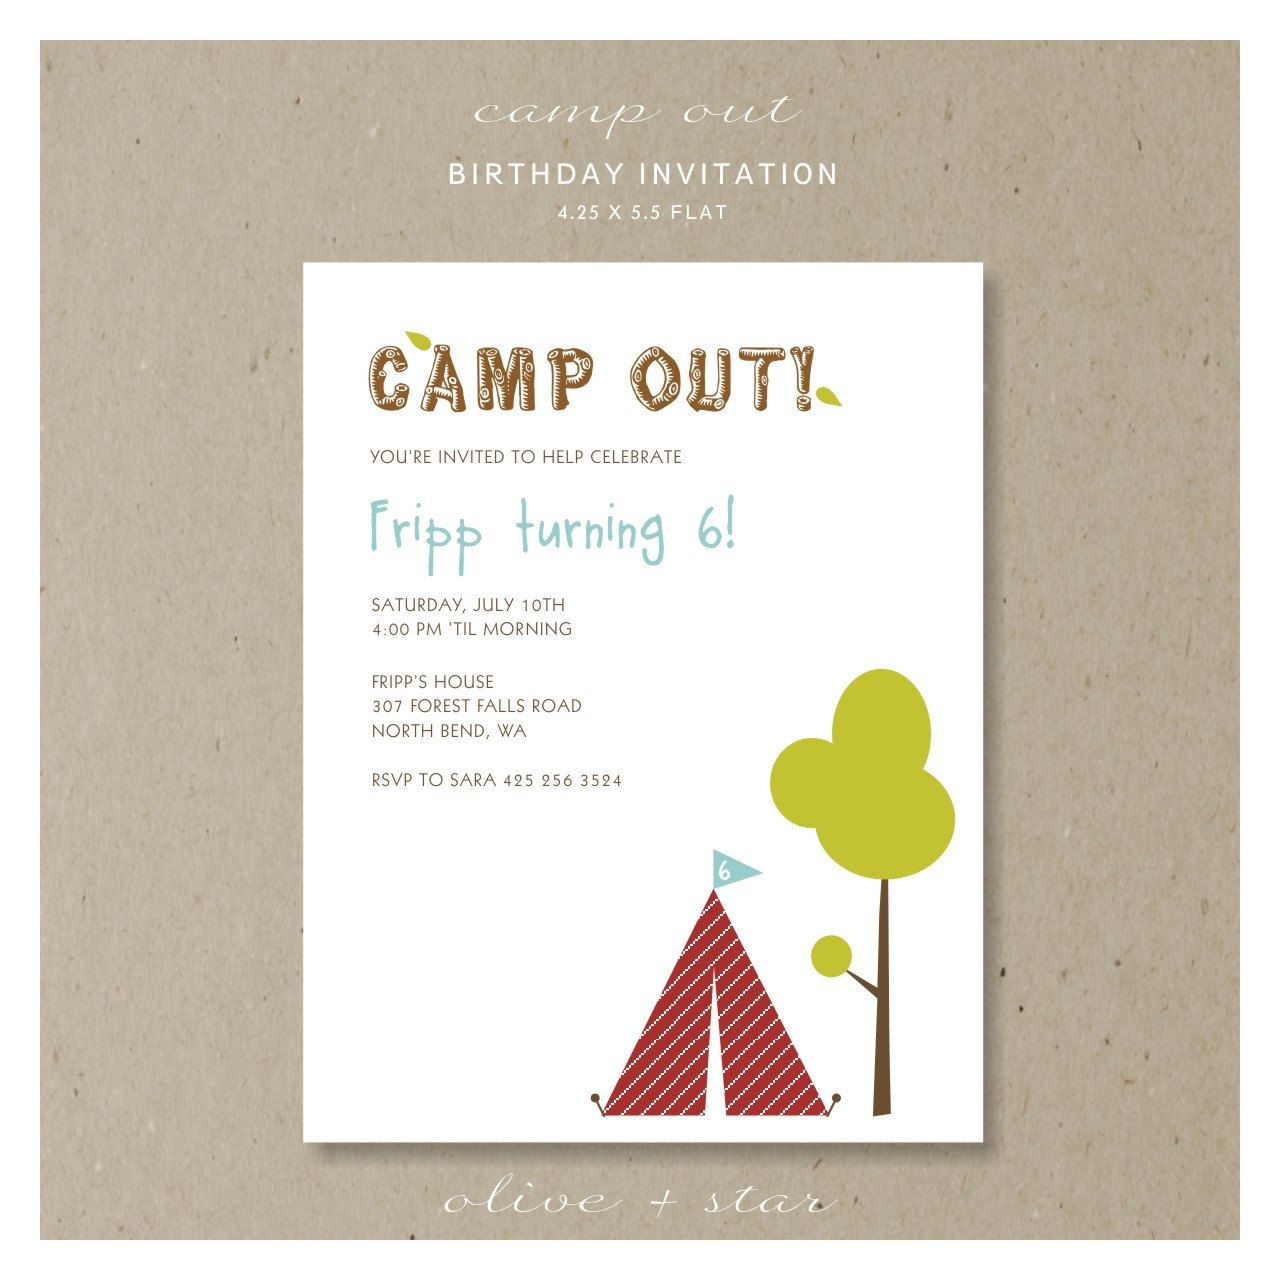 camp out : birthday party invitation set | Camping Party | Pinterest ...